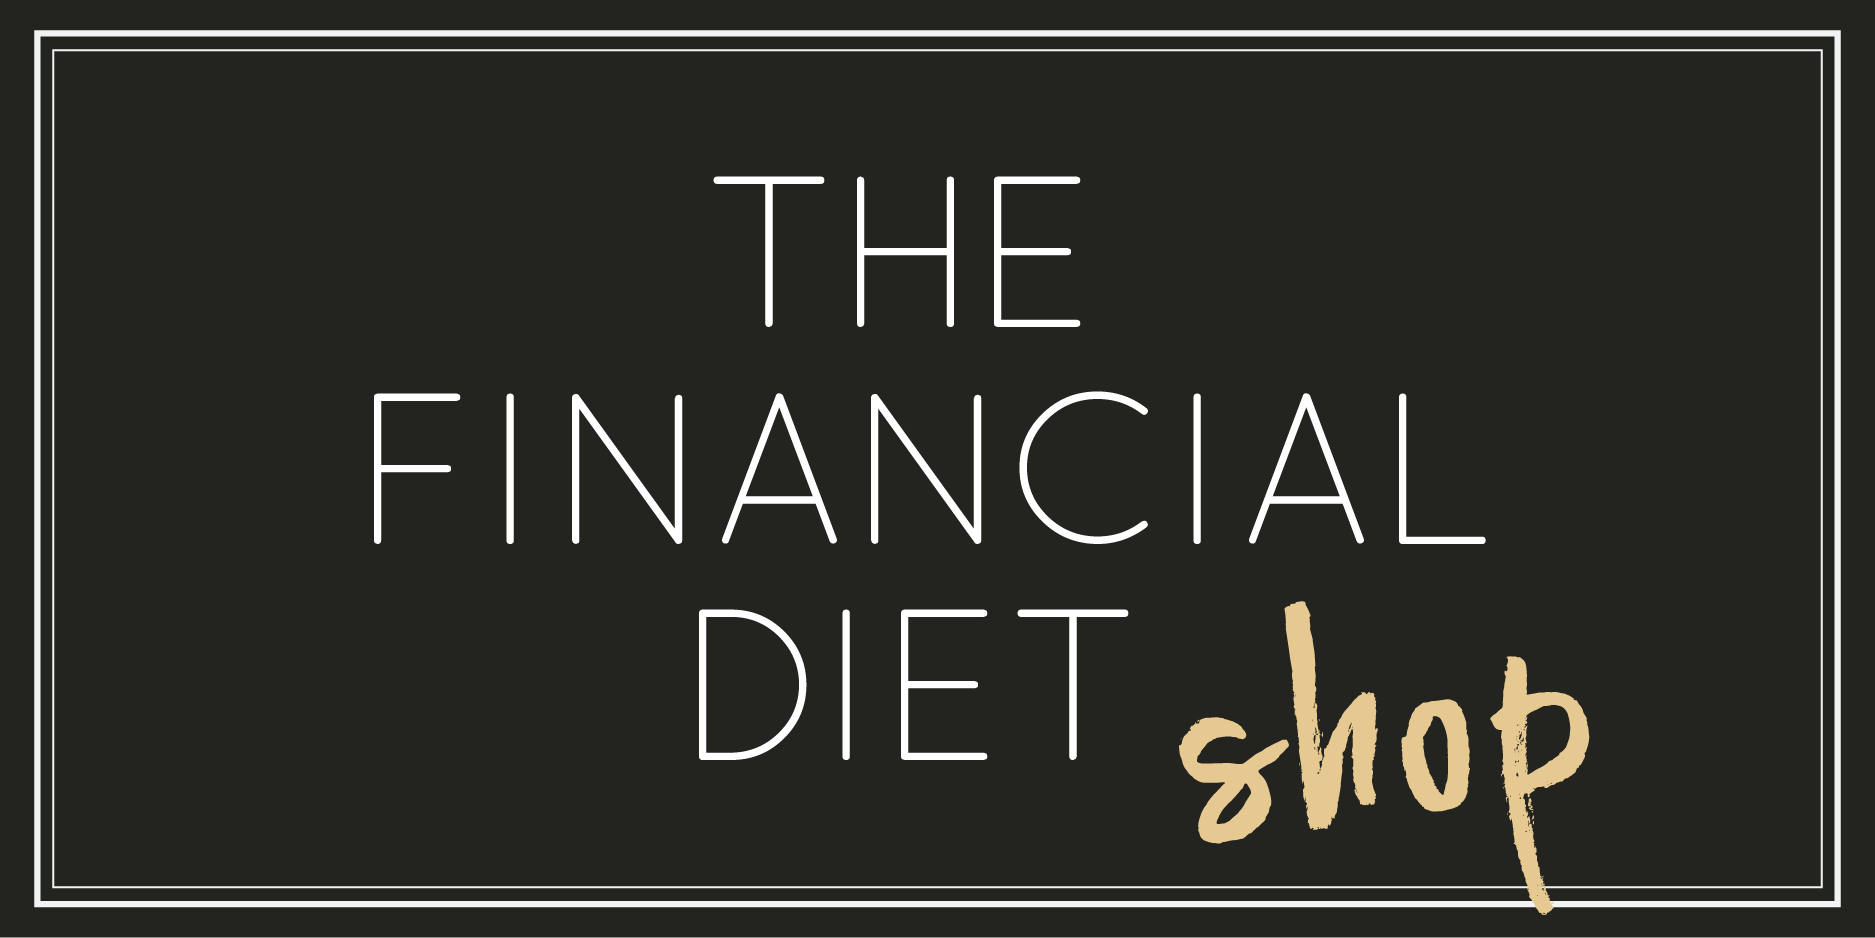 The Financial Diet Shop Banner